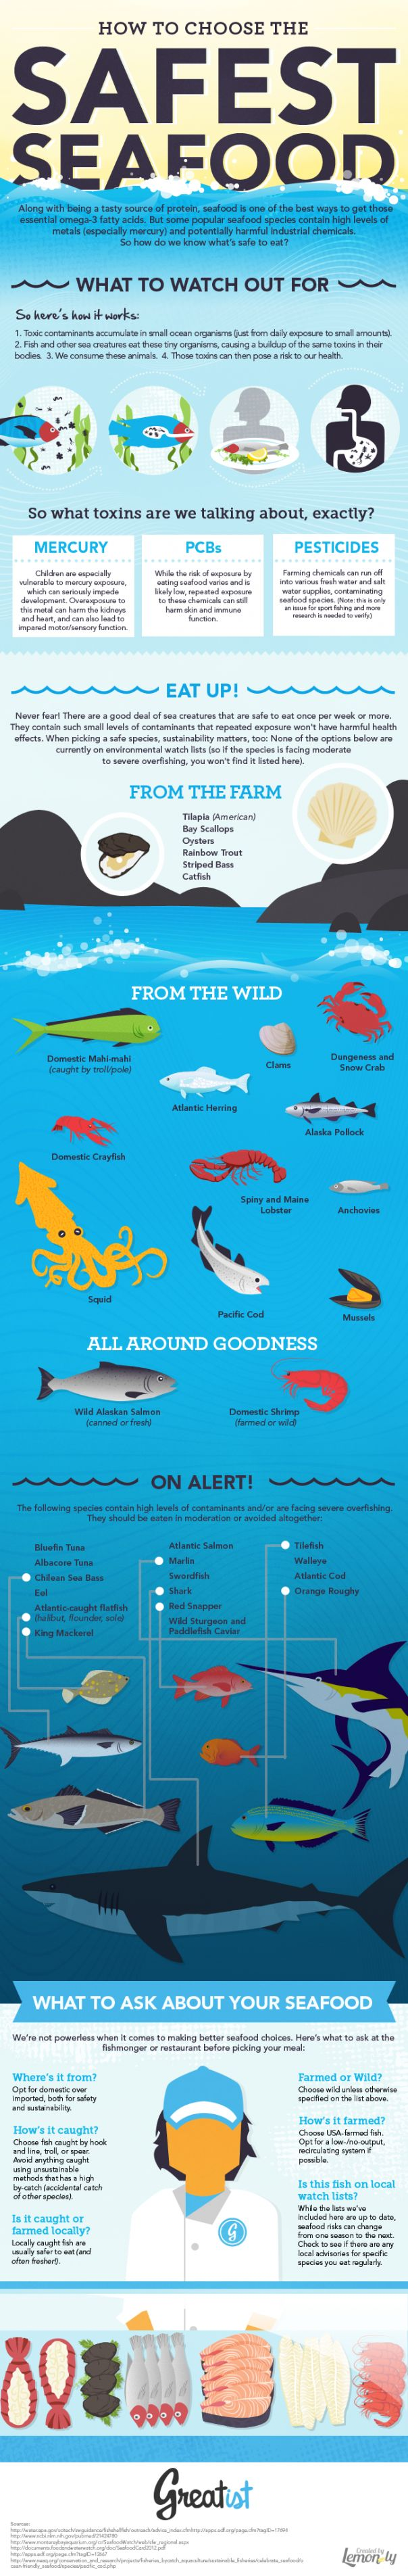 How to Choose the Safest Seafood